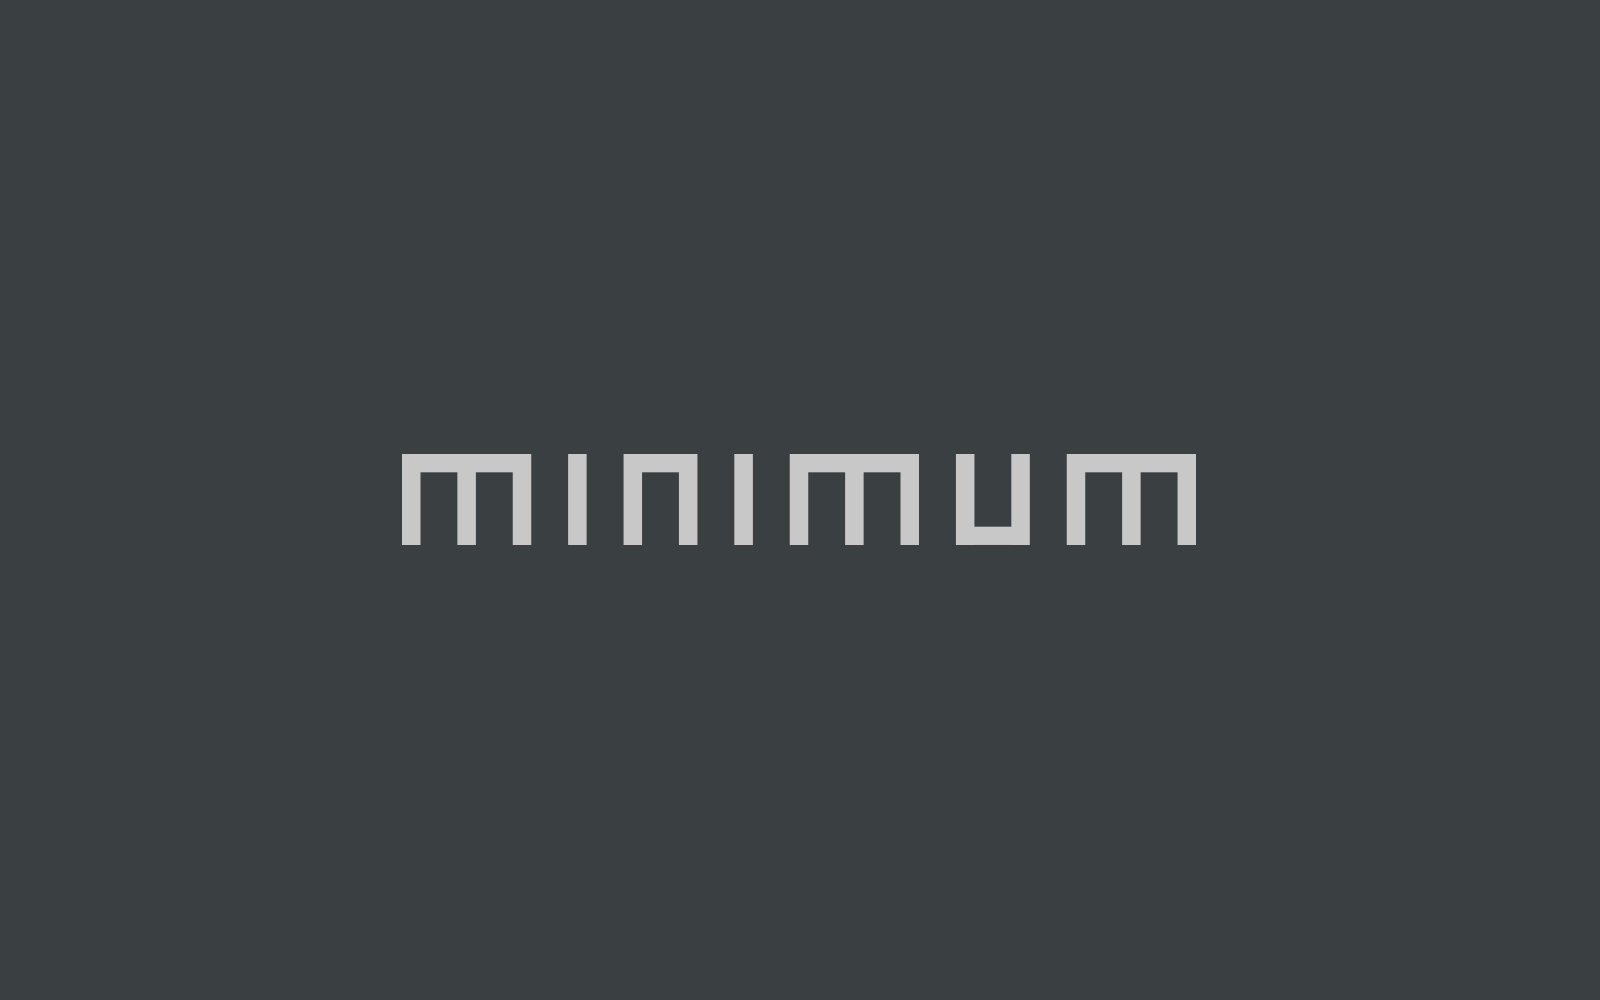 logo_1600p_minimum